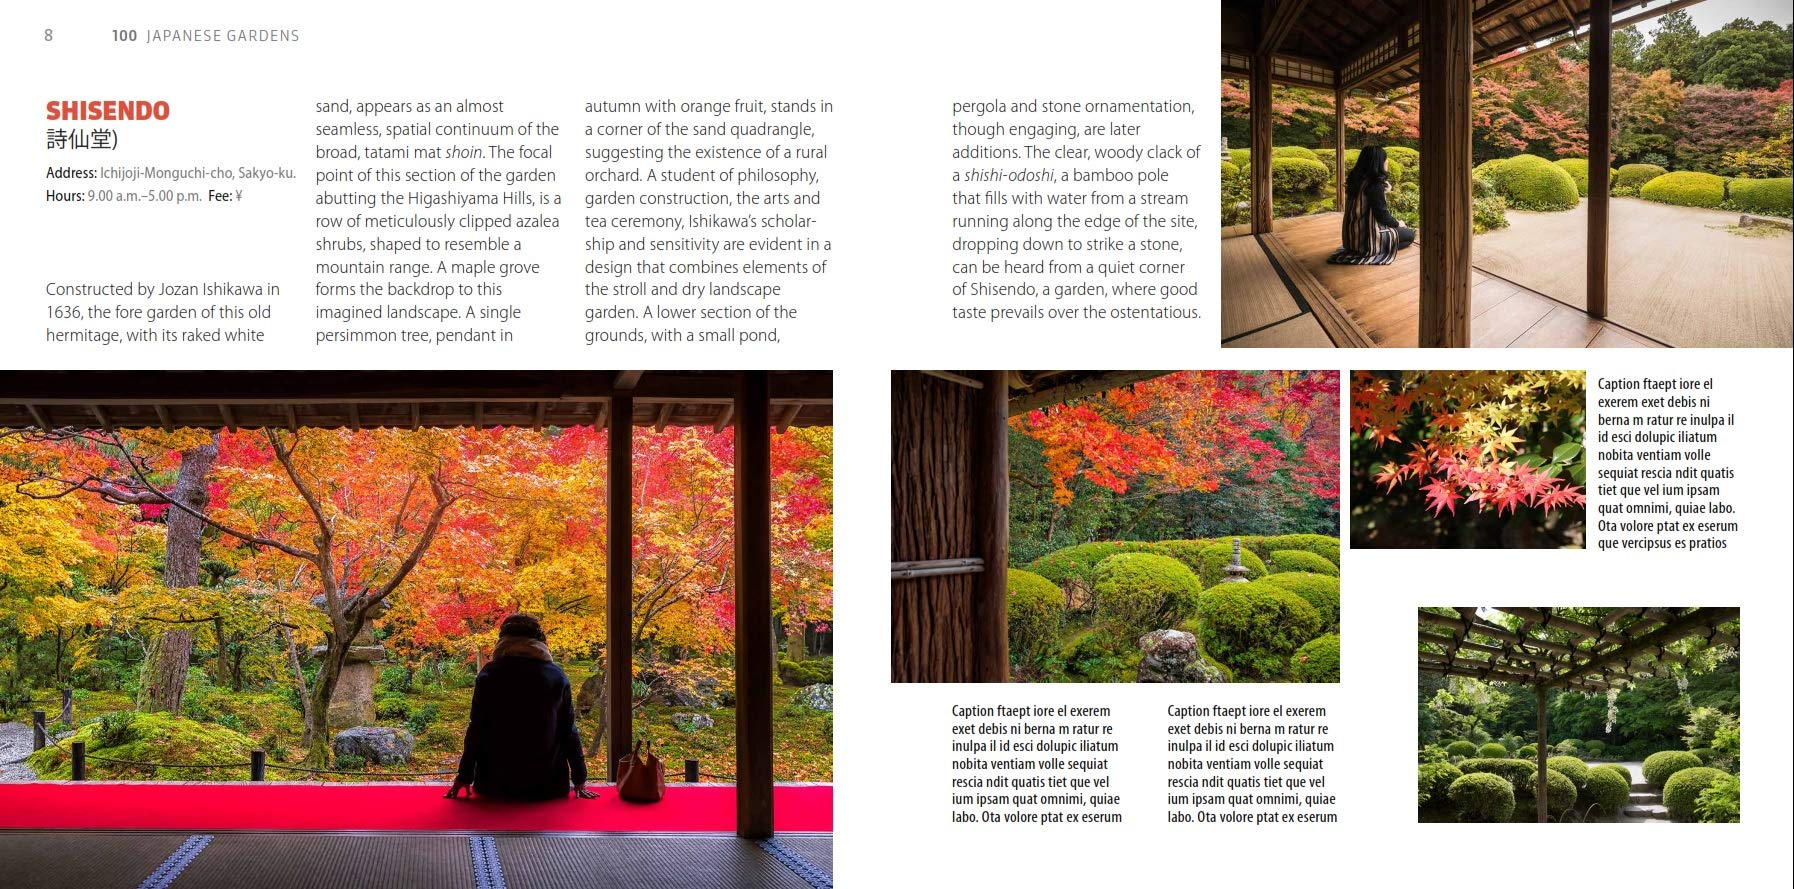 100 Japanese Gardens 100 Japanese Sites To See Idioma Inglés : The Best Gardens to Visit in Japan: Amazon.es: Mansfield, Stephen: Libros en idiomas extranjeros